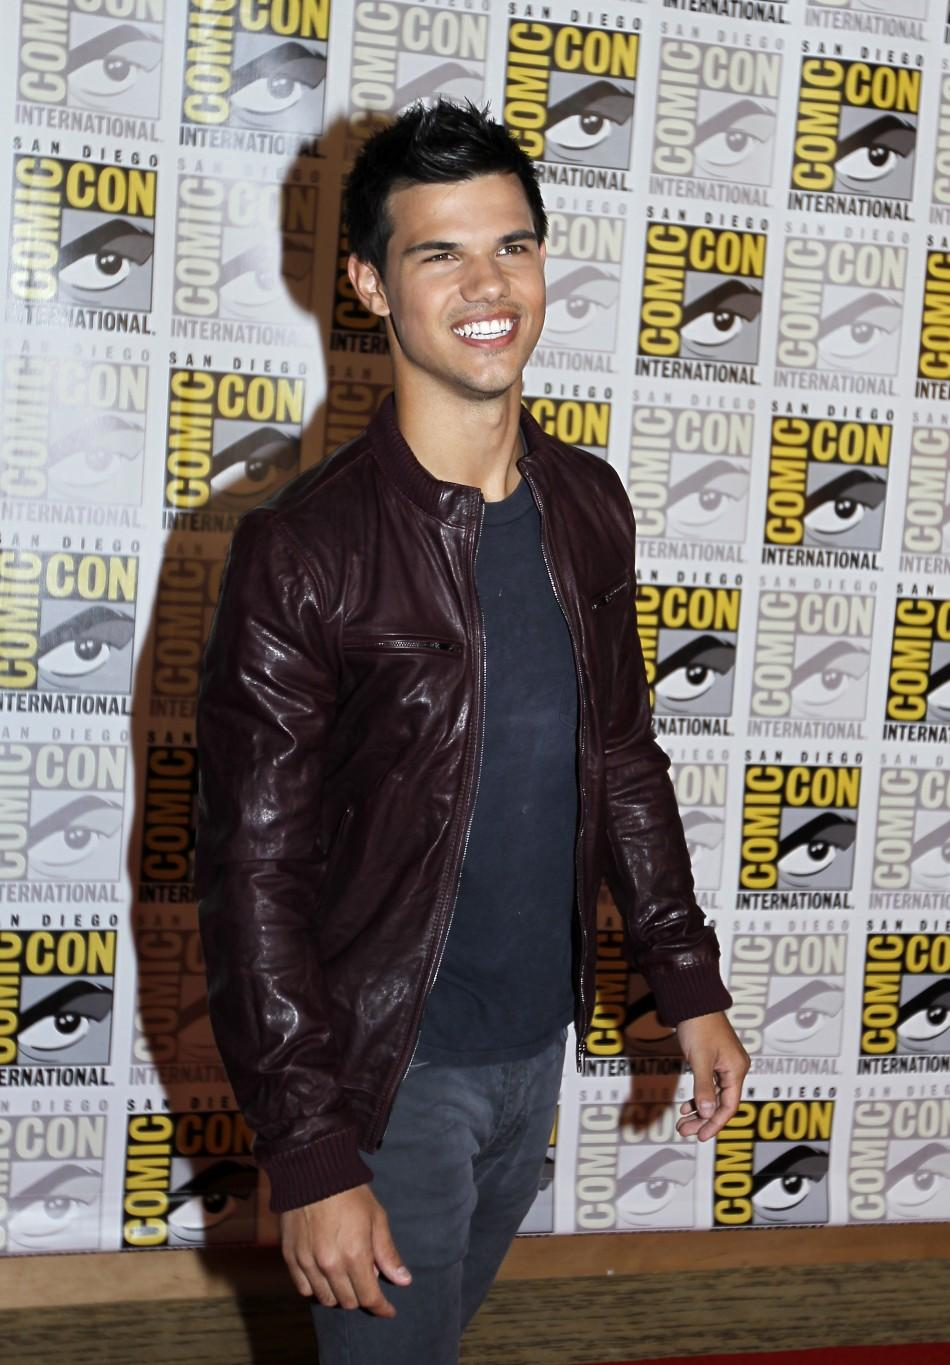 """Taylor Lautner poses to promote """"Breaking Dawn"""" from the Twilight Saga at Comic Con in San Diego"""